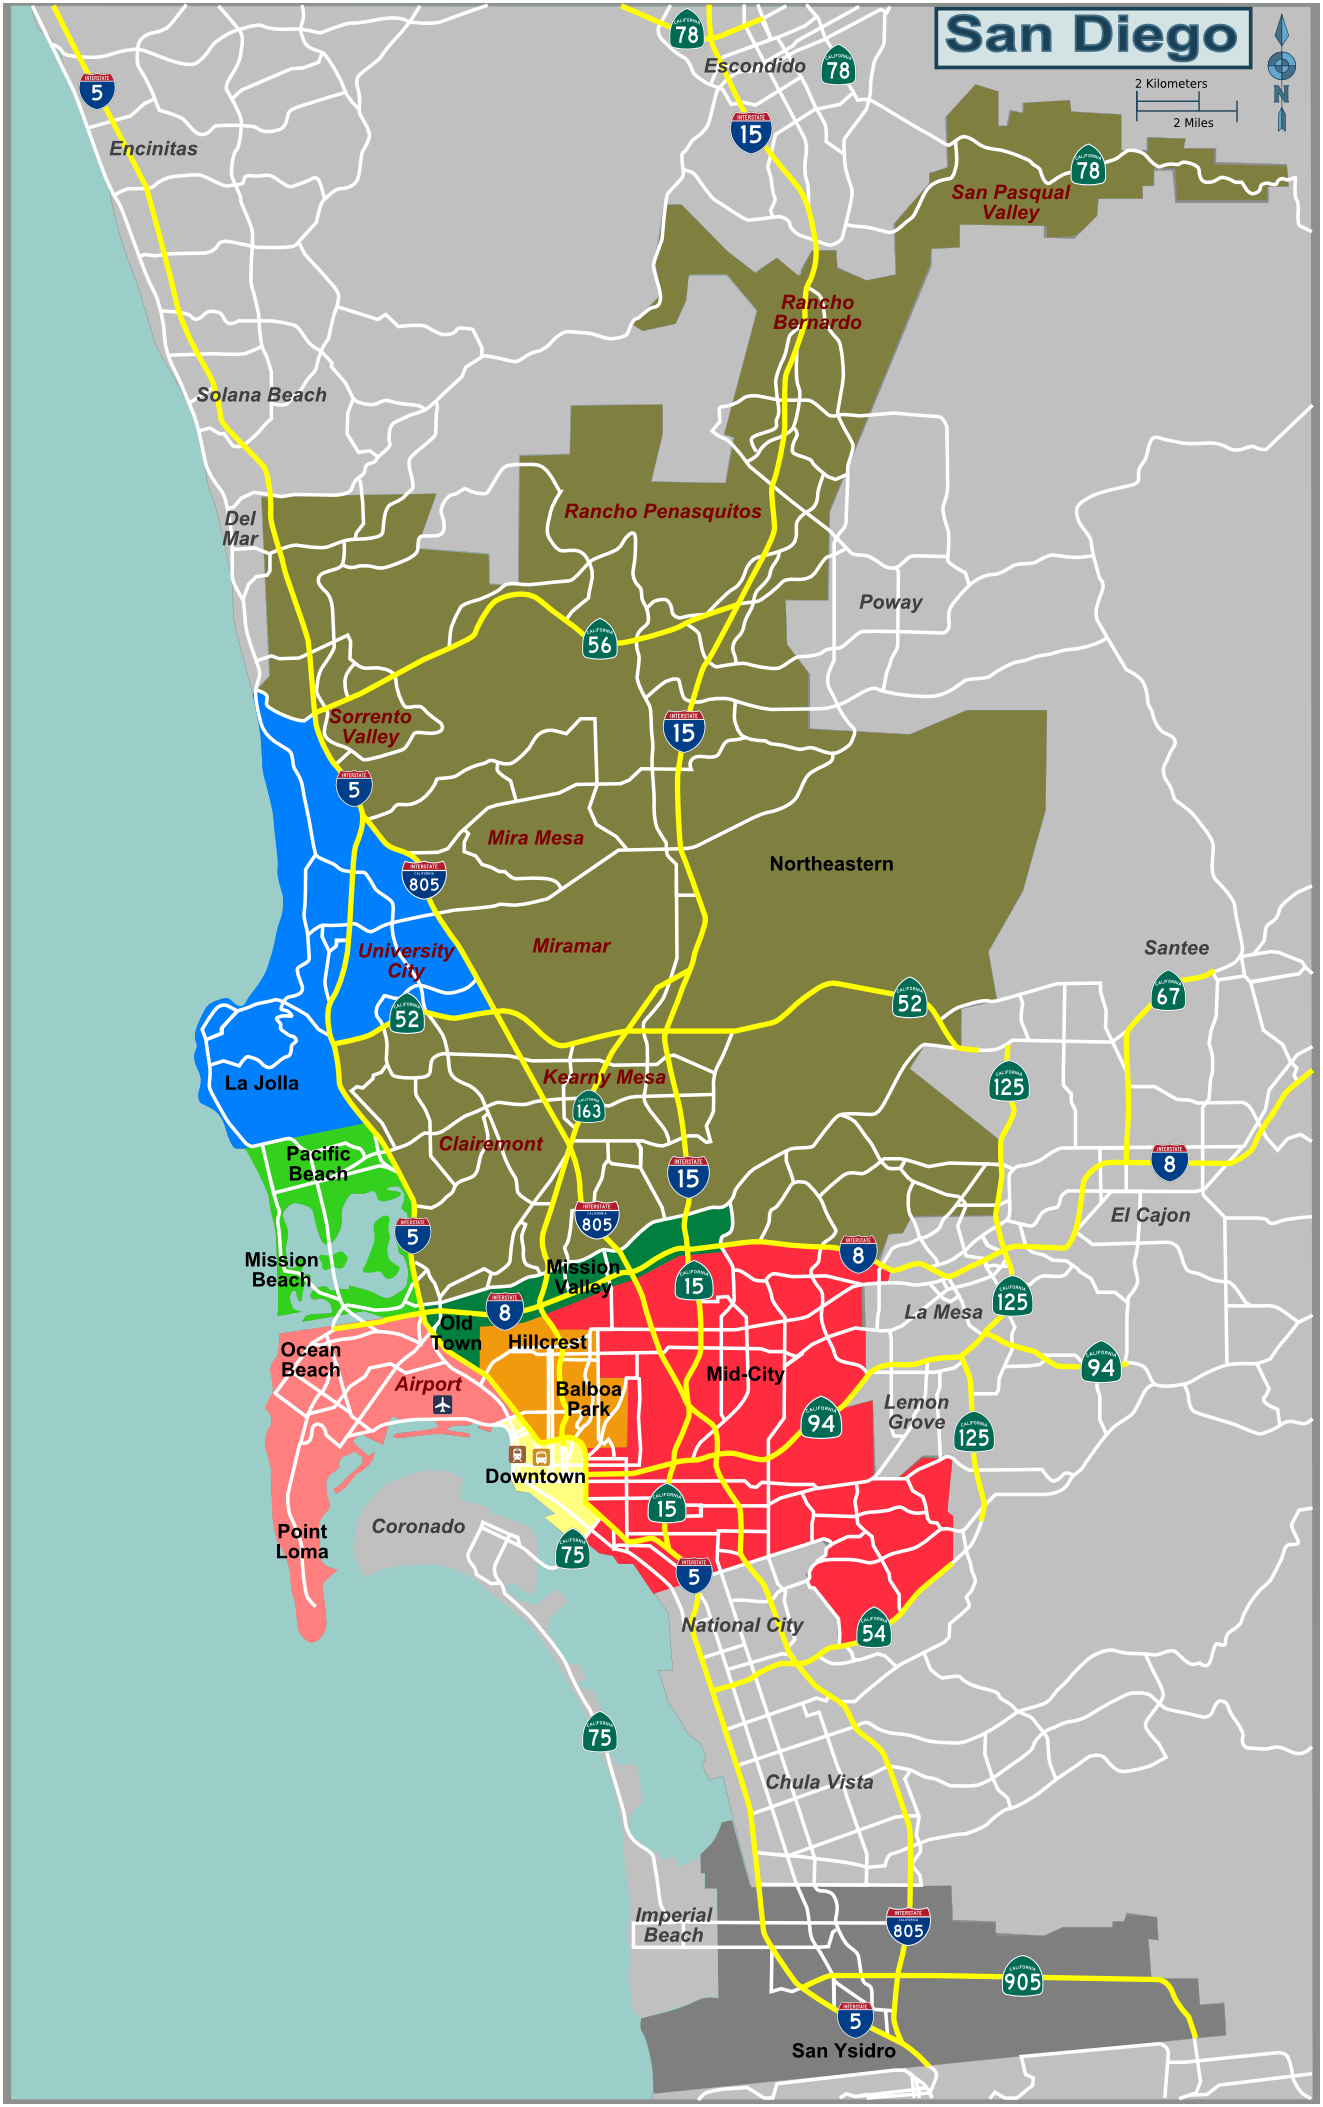 Map Defining Major Districts Of San Diego - City Map Of San Diego California